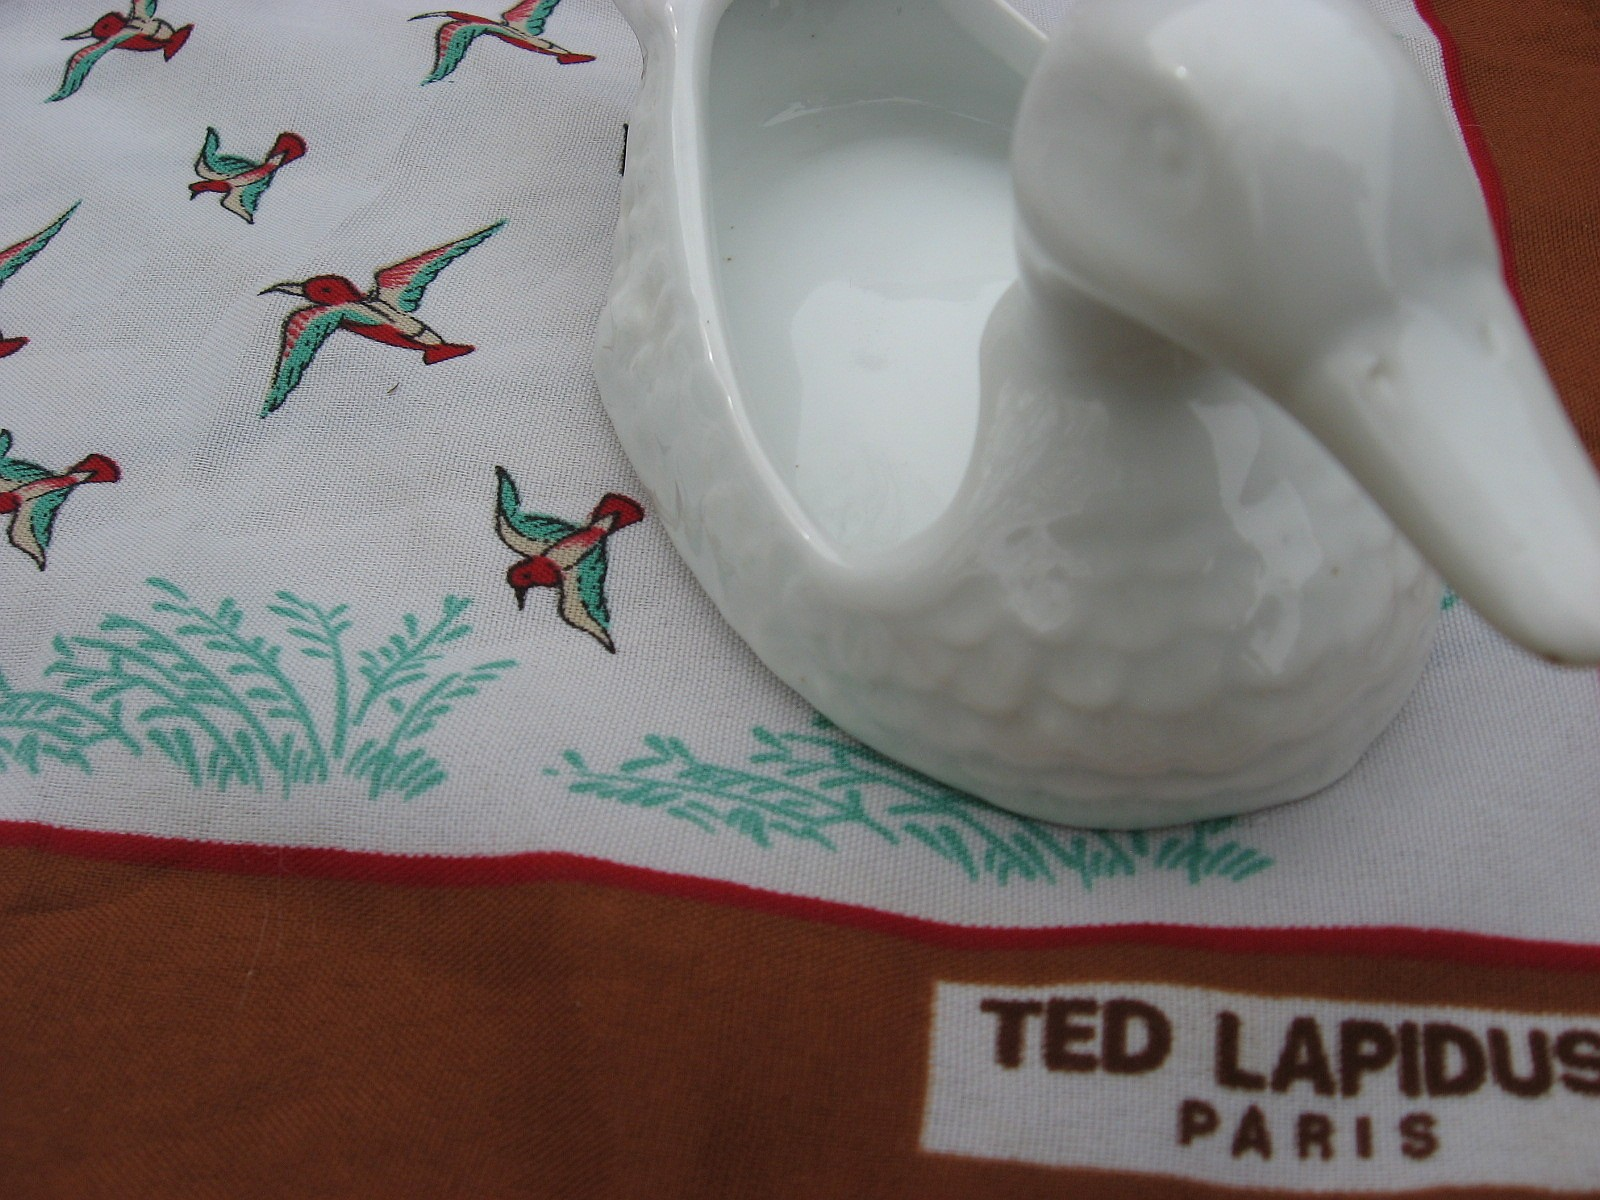 Ted Lapidus French scarf with porcelain duck - Sold at PumpjackPiddlewick